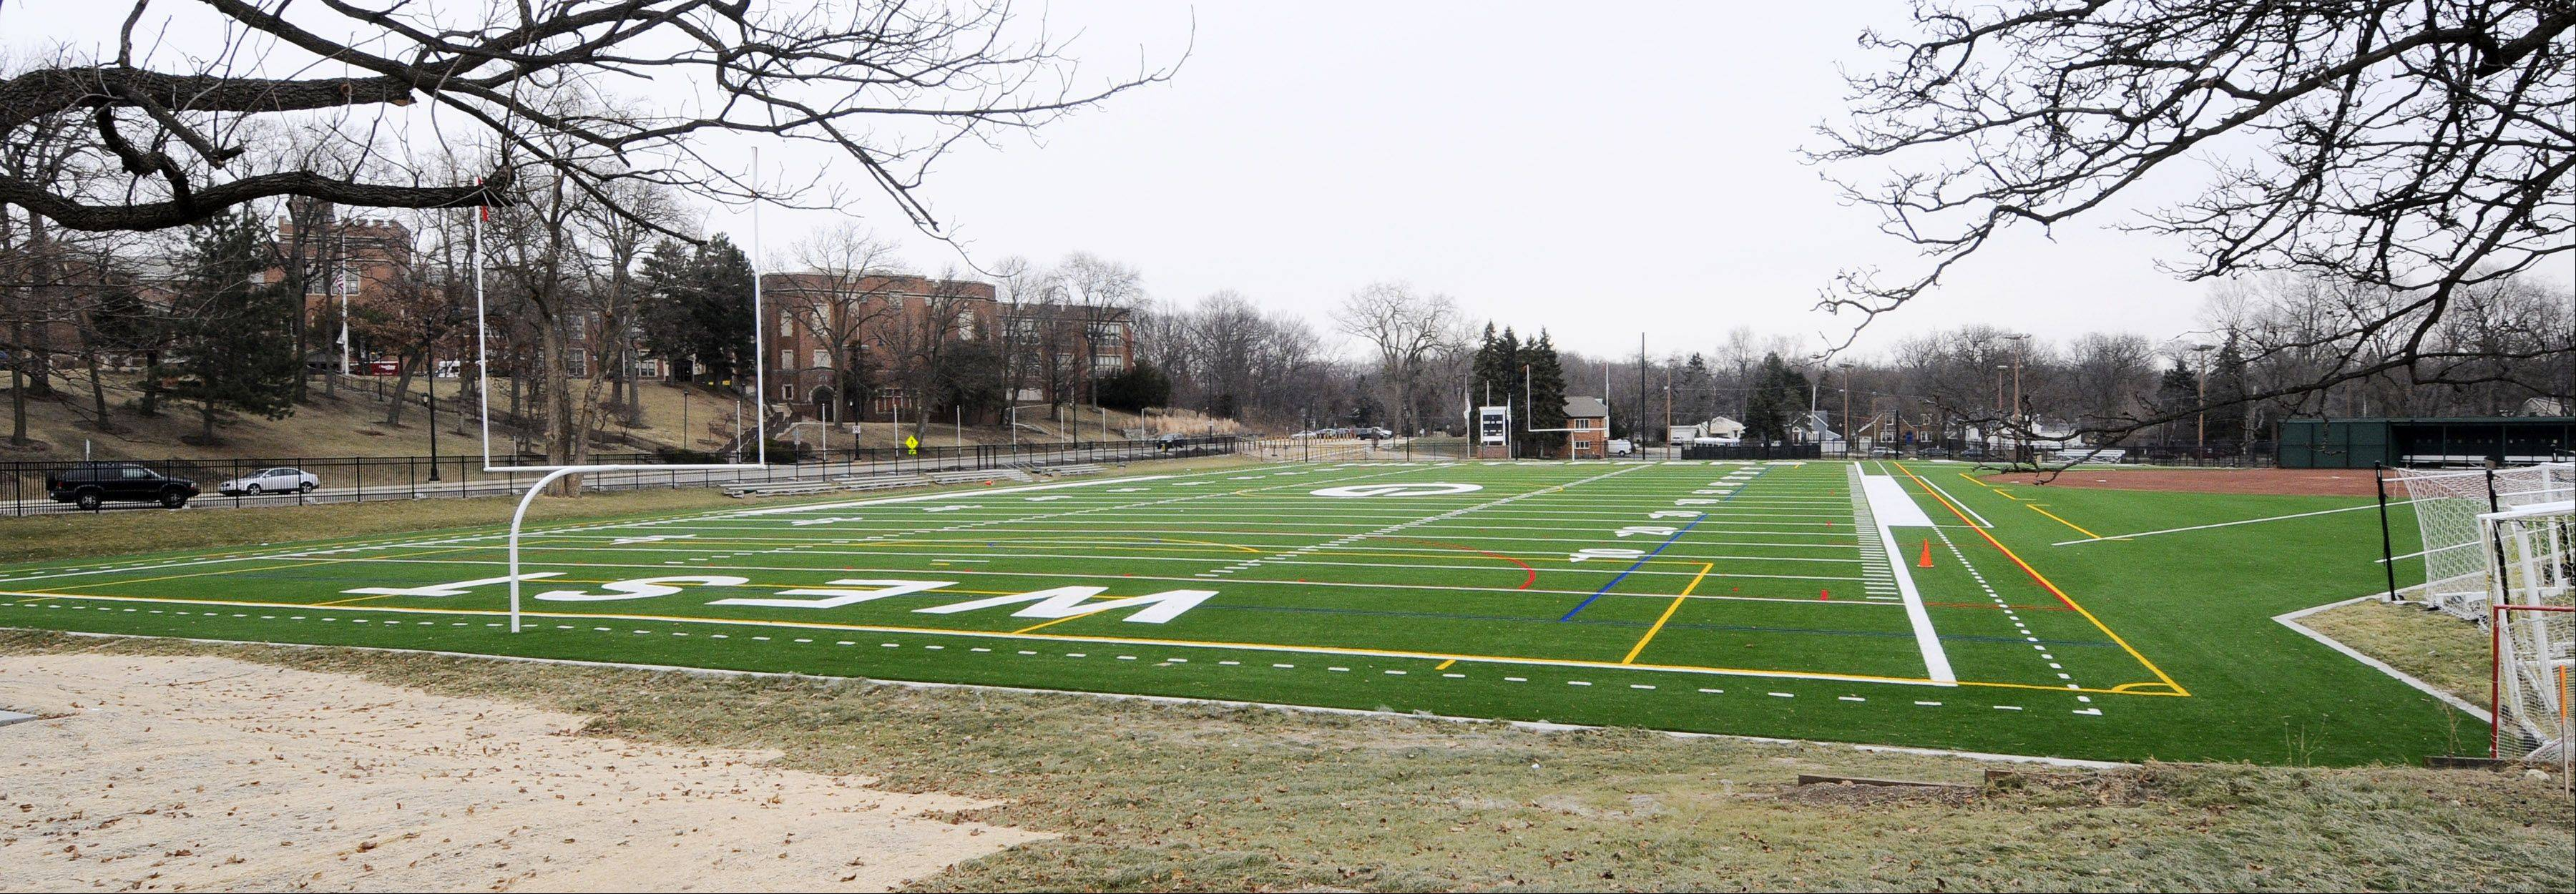 The Glen Ellyn village board will discuss a proposal from Glenbard High School District 87 to install lights at Memorial Field, across from Glenbard West High School.